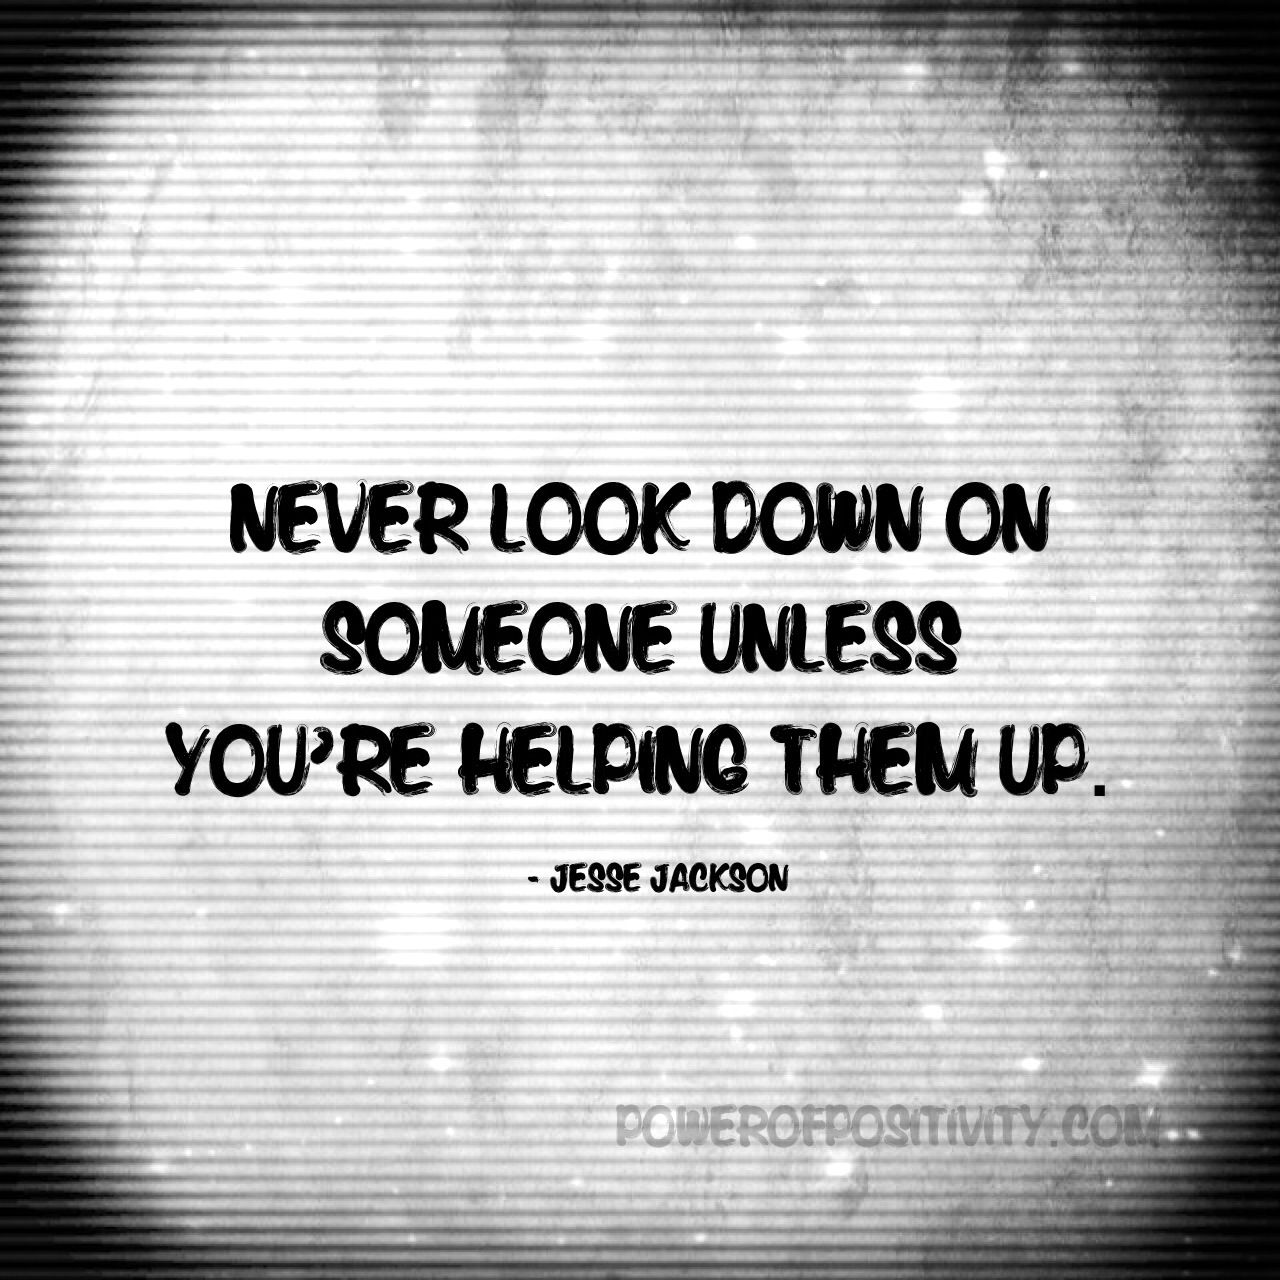 Photo Booth Quotes 7 Ways To Show More Compassion To Others  Power Of Positivity